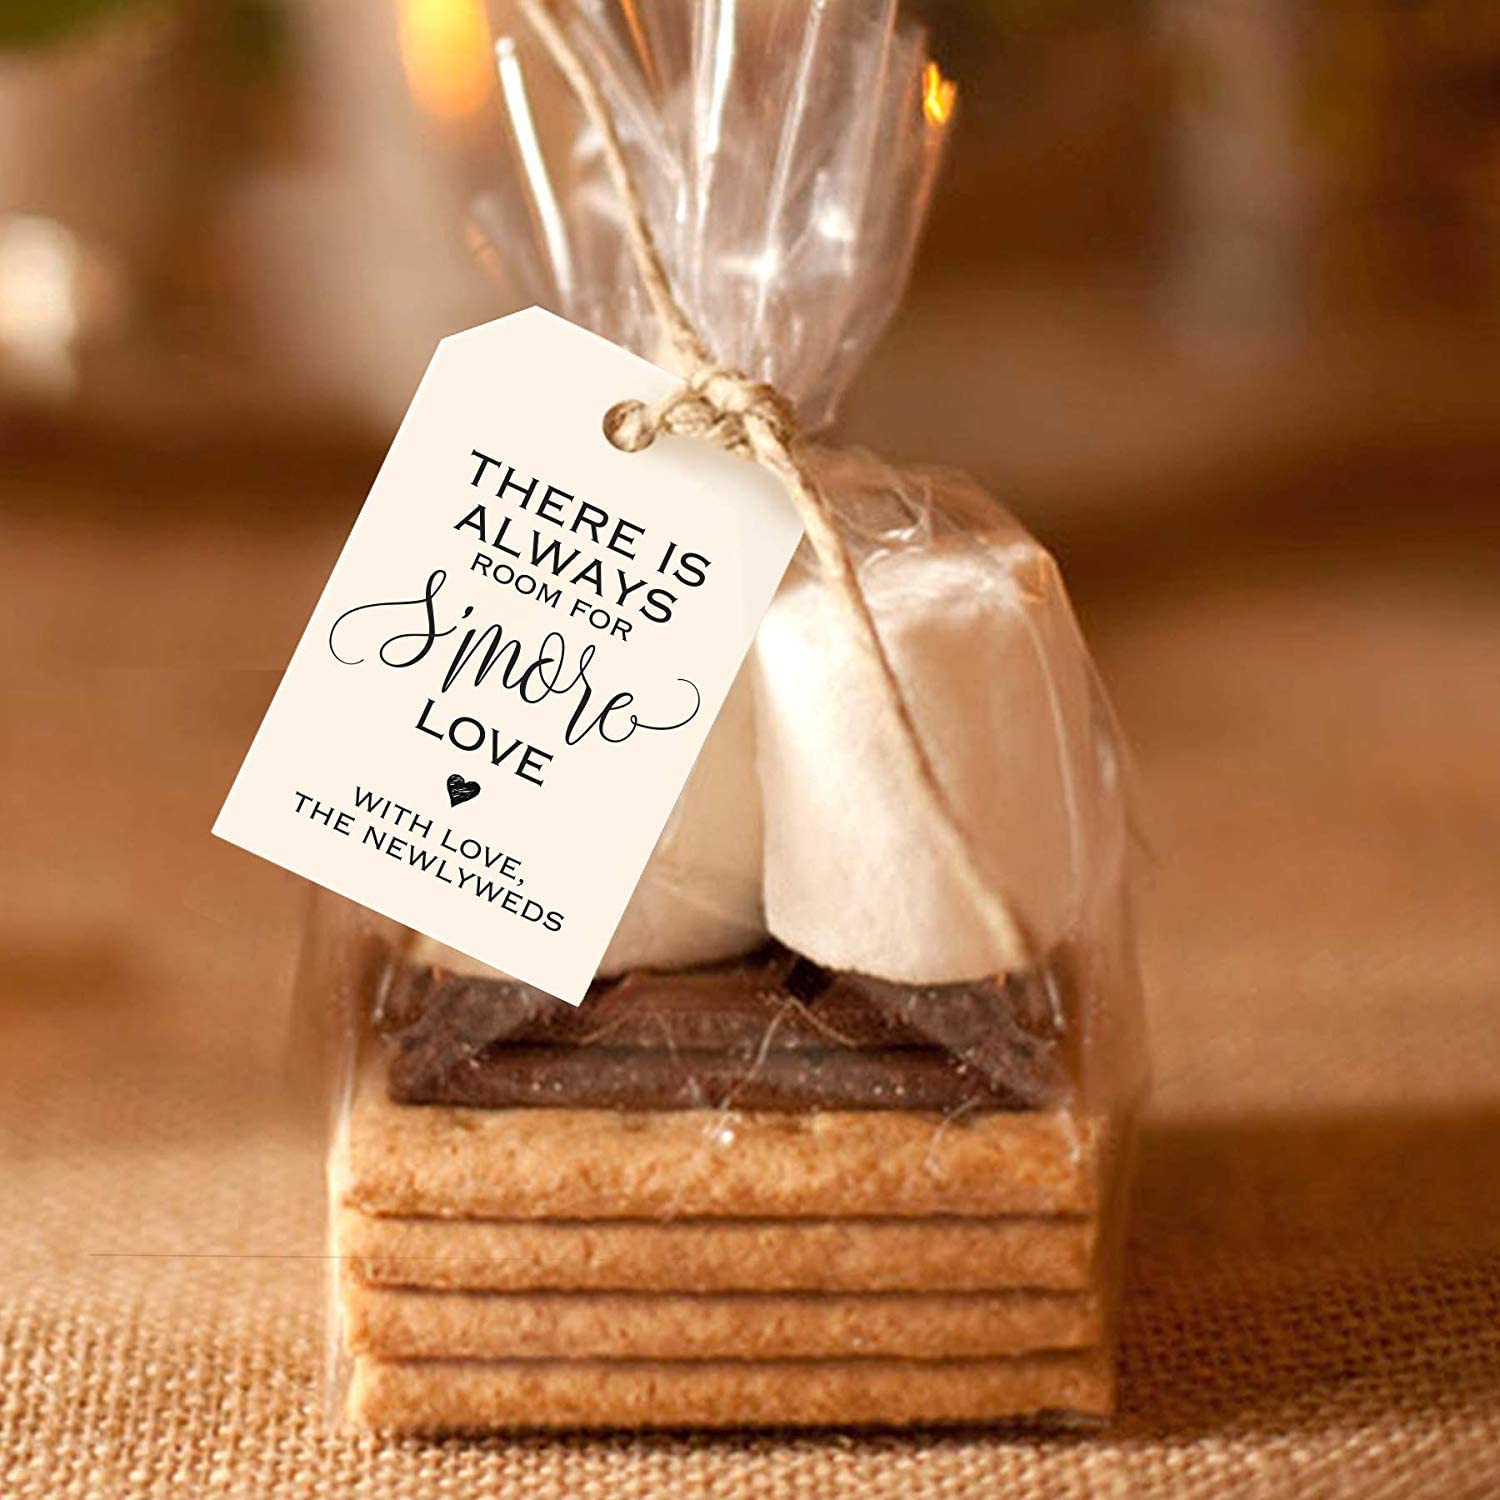 Bliss Collections S'More Love Favor Tags for Wedding Reception, Unique Table Setting Favor Idea, 2x3 inches, Pack of 50